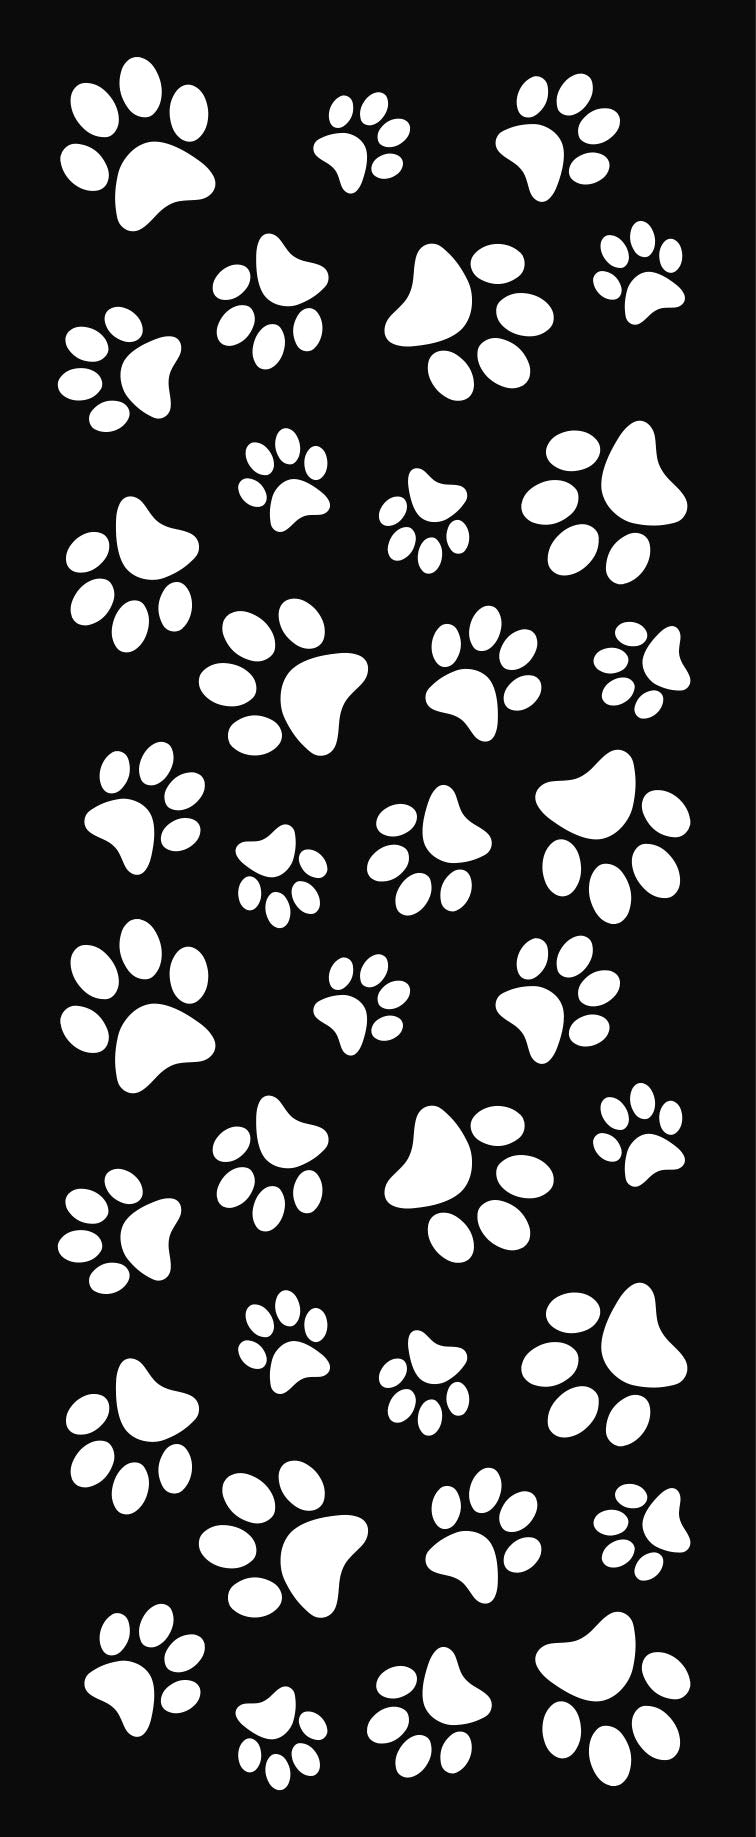 24 West Lemon Paw Prints Scarf Template